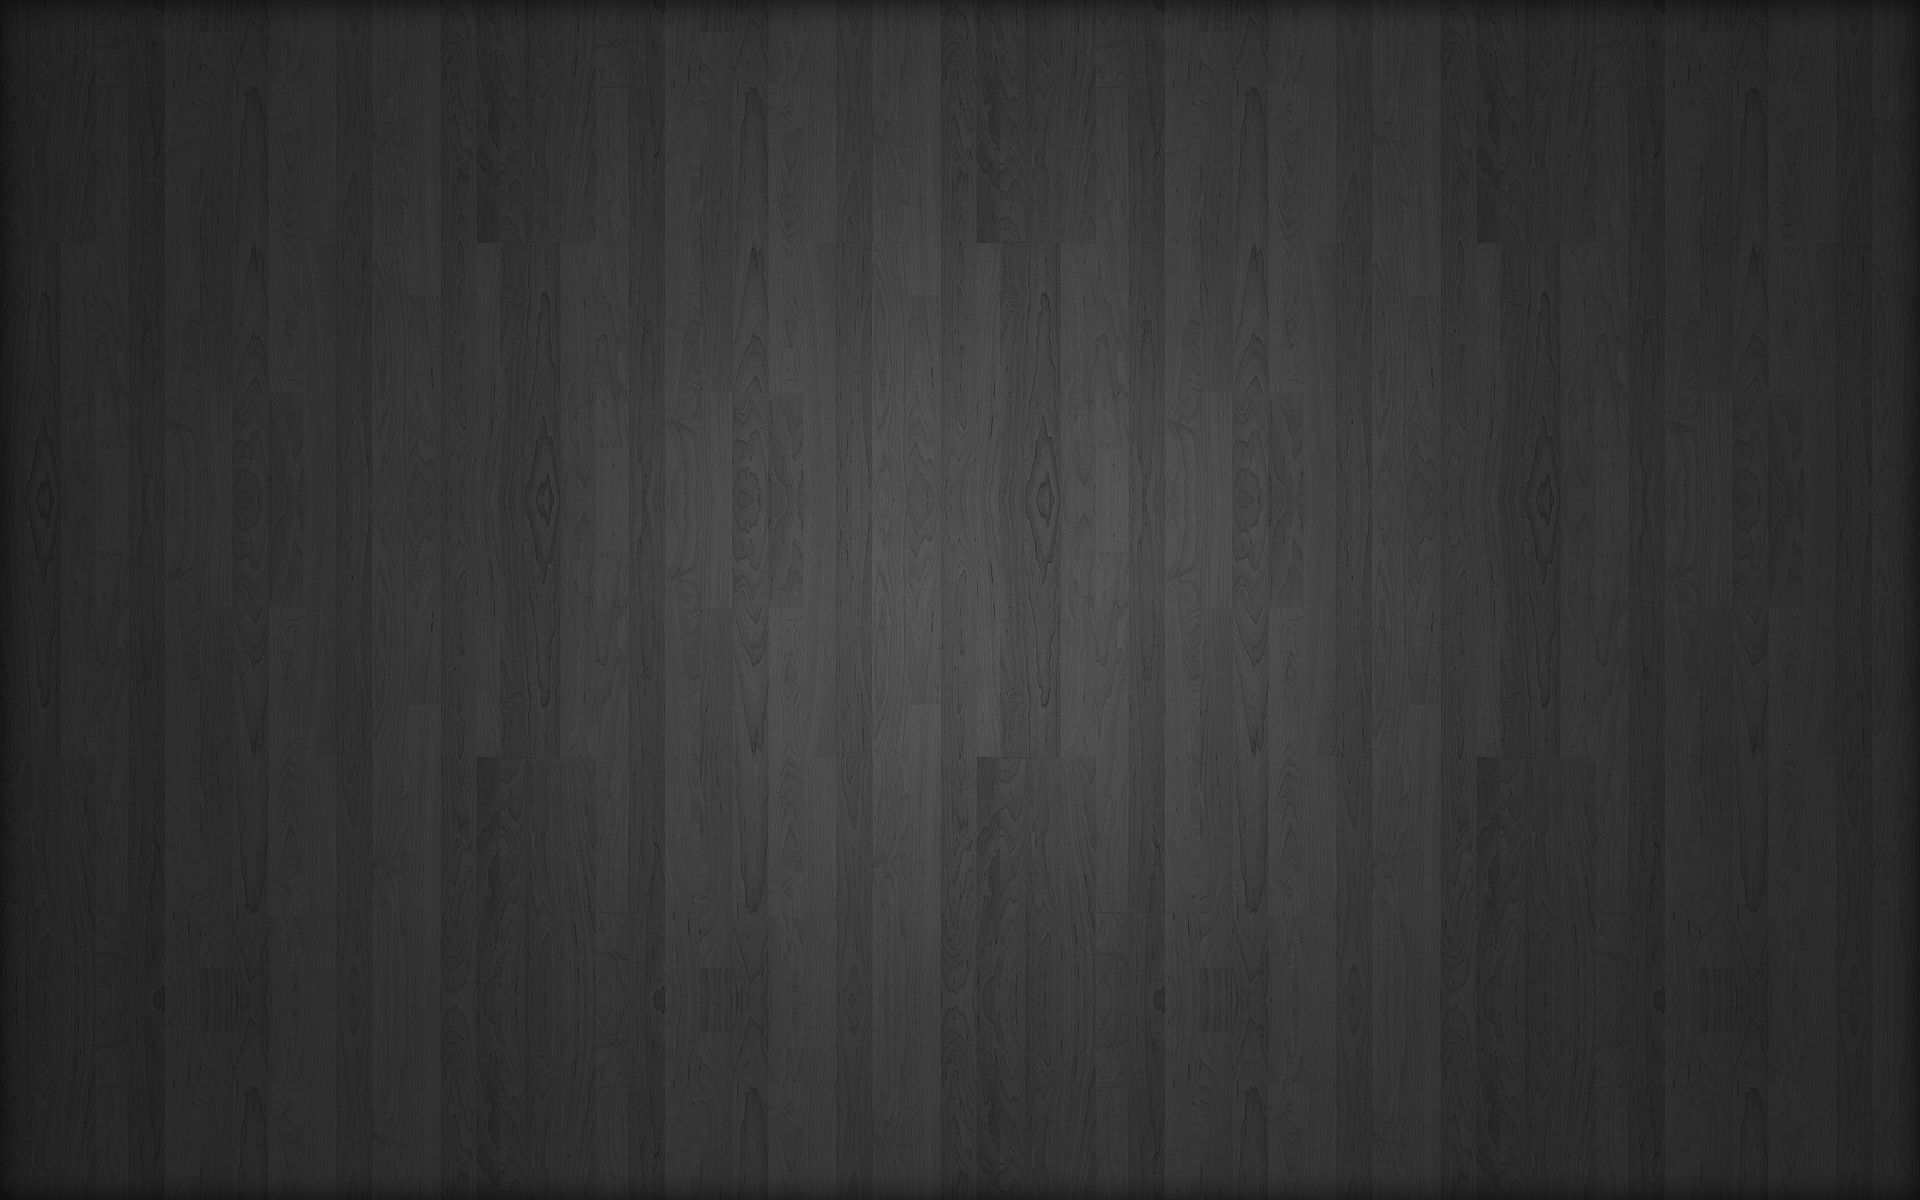 Full HD Wallpapers Backgrounds Wood Black